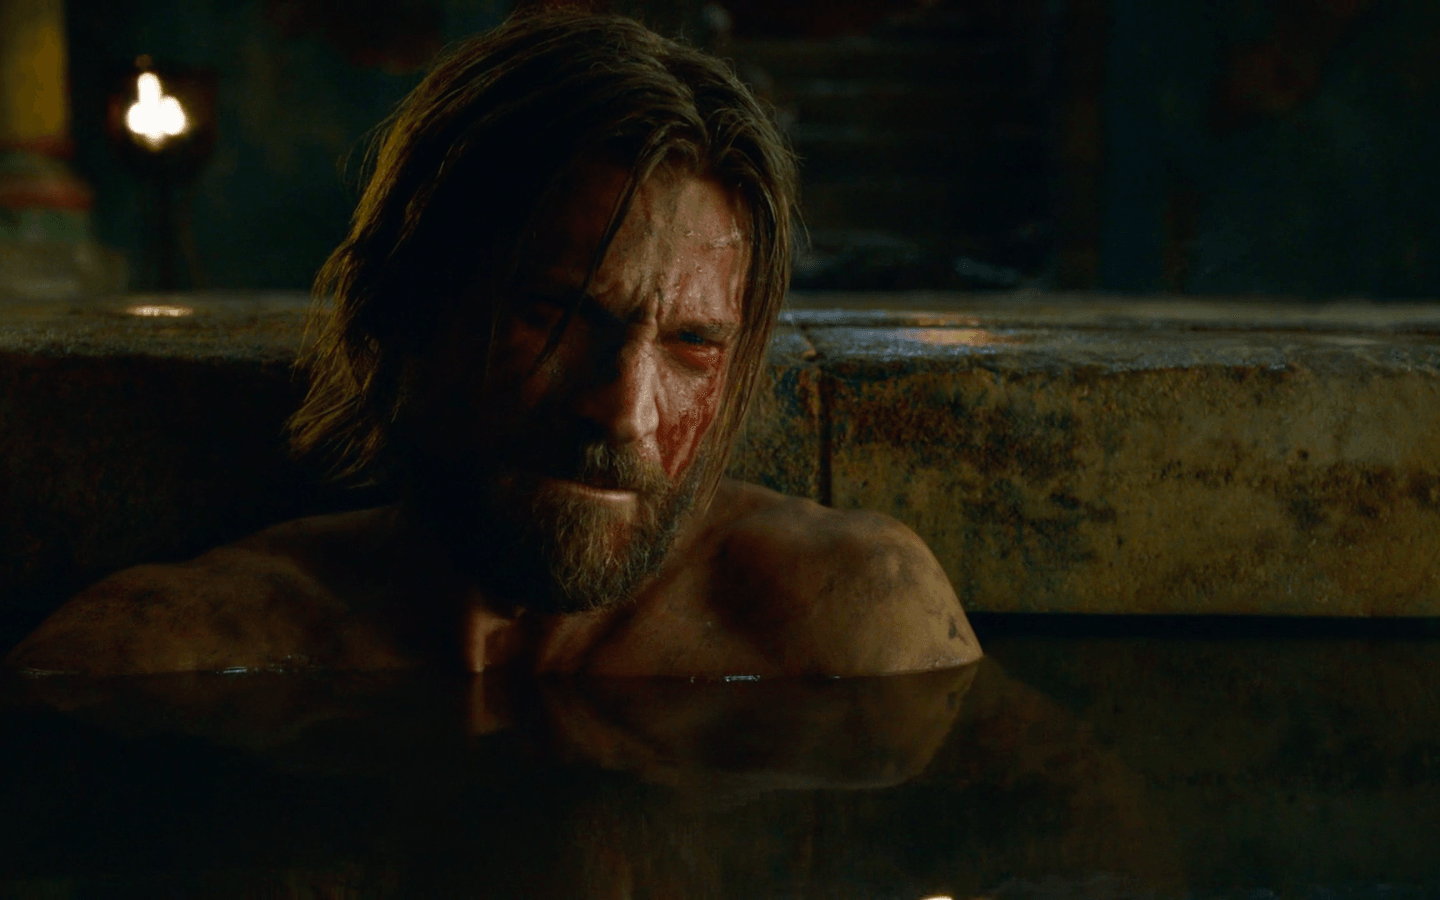 The Kingslayer upset during his bath time | HBO